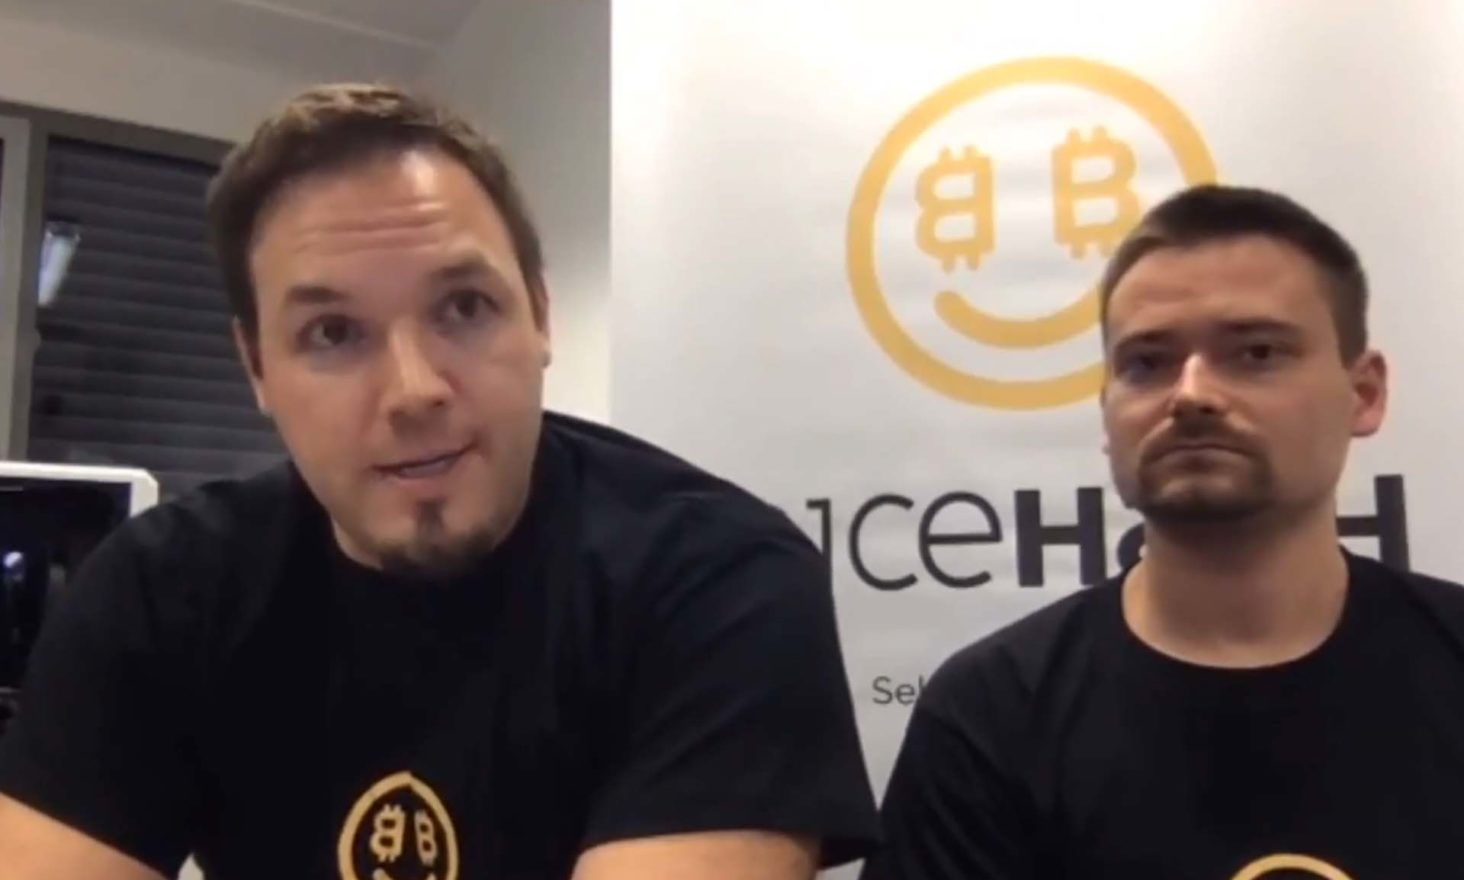 NiceHash CEO Steps Down After $63 Million in Bitcoin Stolen in Cyber Attack